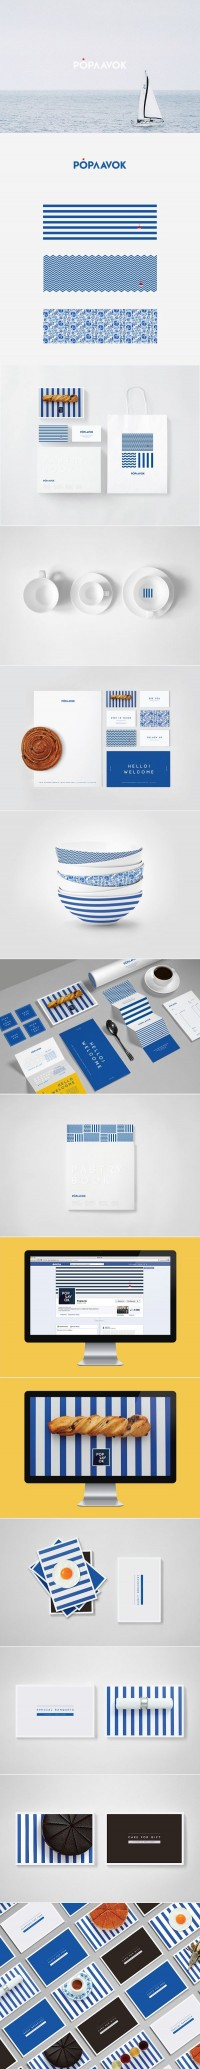 Pin by Claire Brennan on Brand & Identity | Pinterest